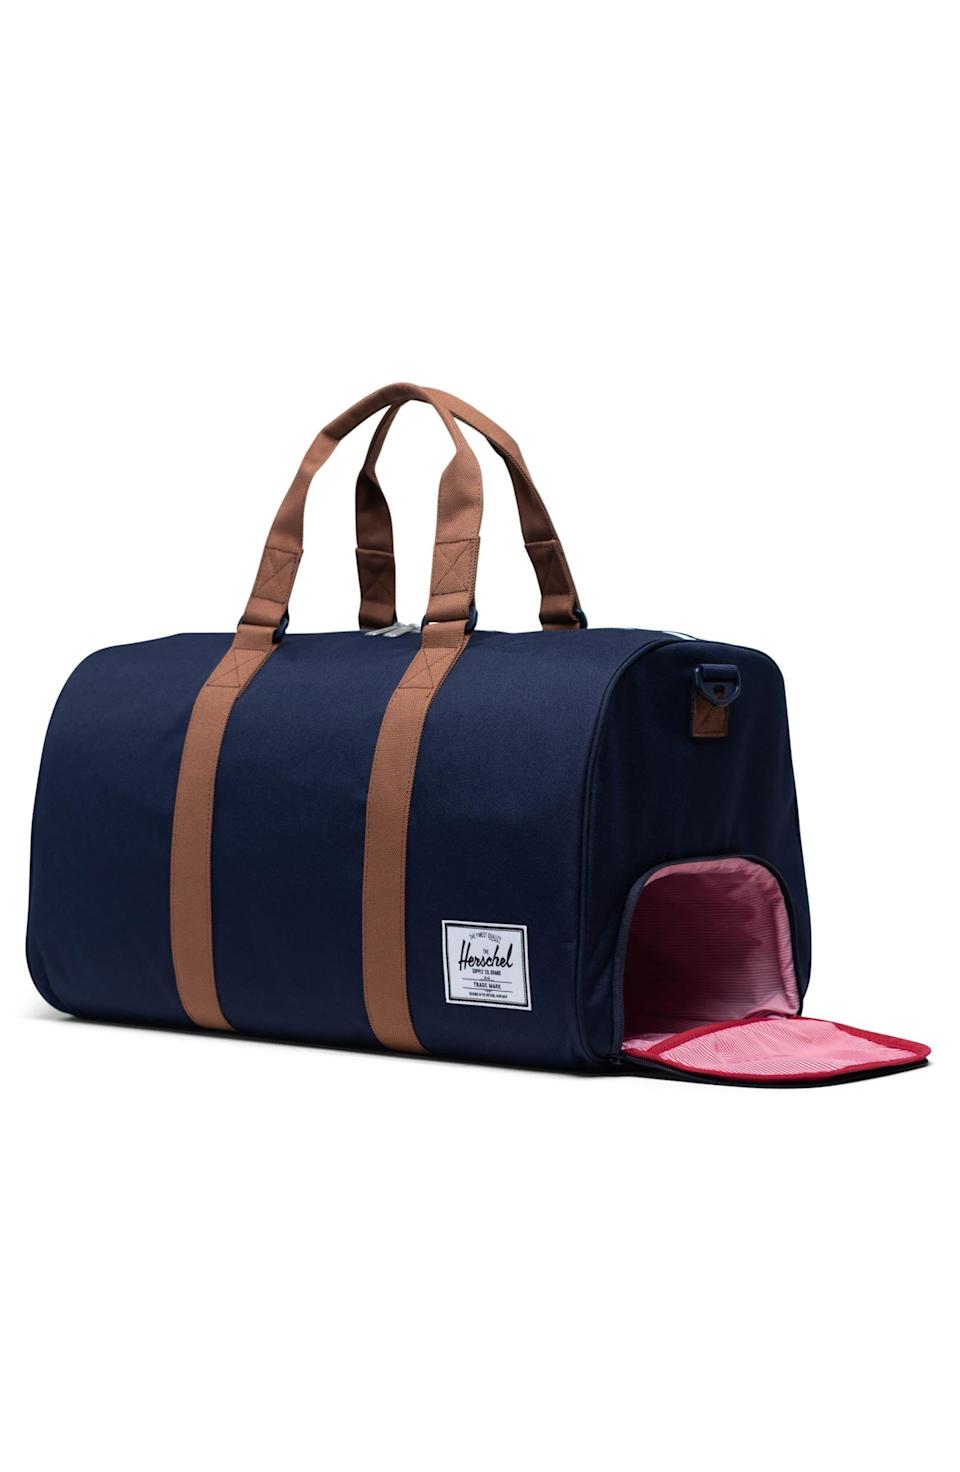 "<p><strong>HERSCHEL SUPPLY CO.</strong></p><p>nordstrom.com</p><p><strong>$90.00</strong></p><p><a href=""https://go.redirectingat.com?id=74968X1596630&url=https%3A%2F%2Fshop.nordstrom.com%2Fs%2Fherschel-supply-co-novel-duffle-bag%2F5293829&sref=https%3A%2F%2Fwww.goodhousekeeping.com%2Fholidays%2Fgift-ideas%2Fg4517%2Fgifts-for-boyfriend%2F"" rel=""nofollow noopener"" target=""_blank"" data-ylk=""slk:Shop Now"" class=""link rapid-noclick-resp"">Shop Now</a></p><p>This <a href=""https://www.goodhousekeeping.com/travel-products/luggage-reviews/g20709039/best-carry-on-luggage-reviews/"" rel=""nofollow noopener"" target=""_blank"" data-ylk=""slk:travel duffel"" class=""link rapid-noclick-resp"">travel duffel</a> comes with two carrying straps and one longer, adjustable strap so he can easily throw it over his shoulder for gym sessions or plane journeys. It even has a separate storage compartment for his smelly sneakers! </p>"